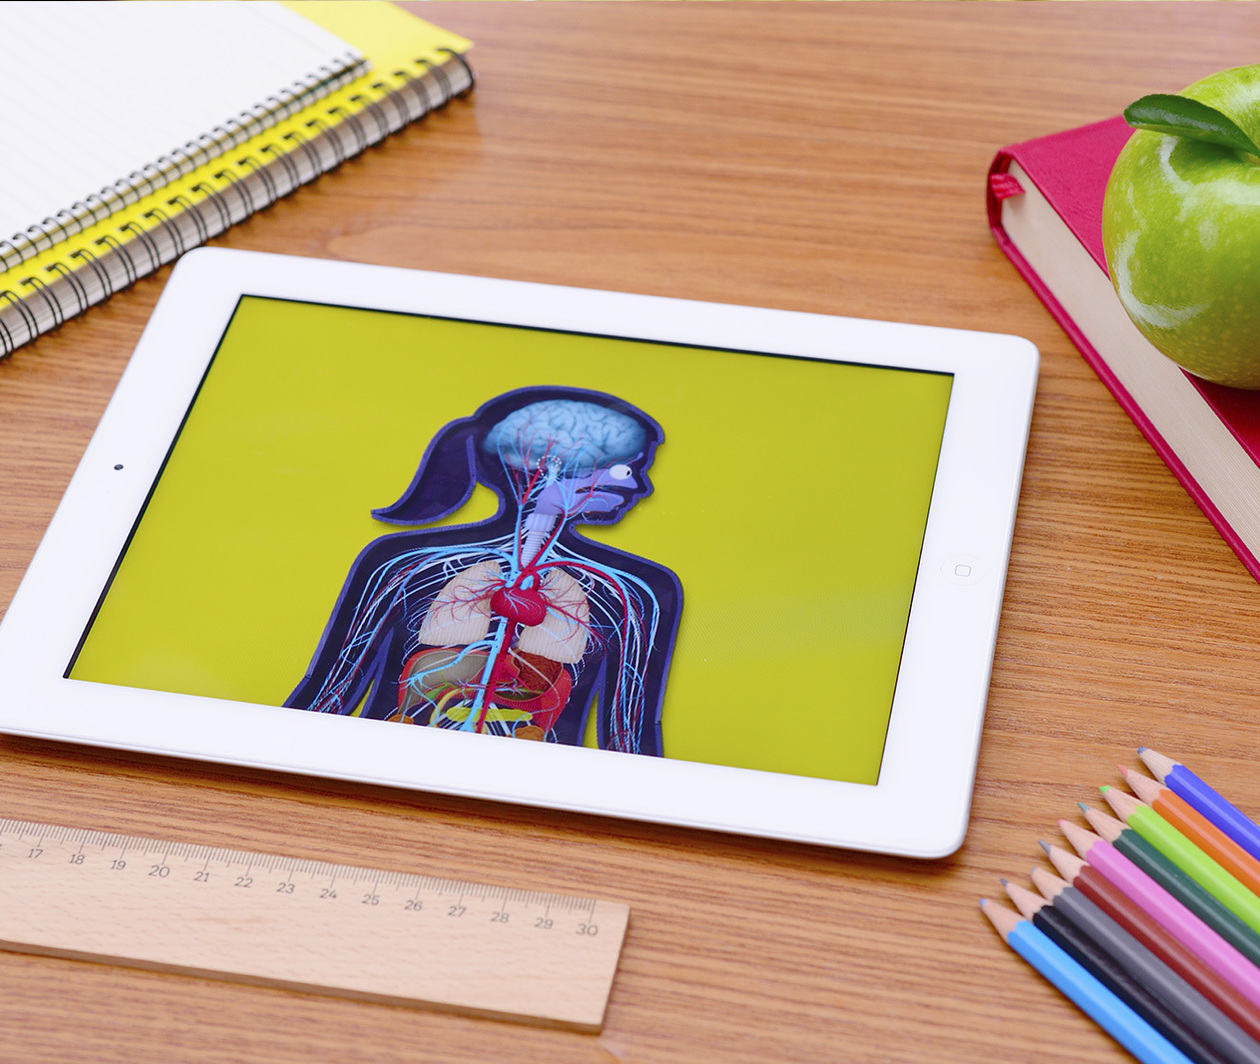 Designing E-Learning for Health